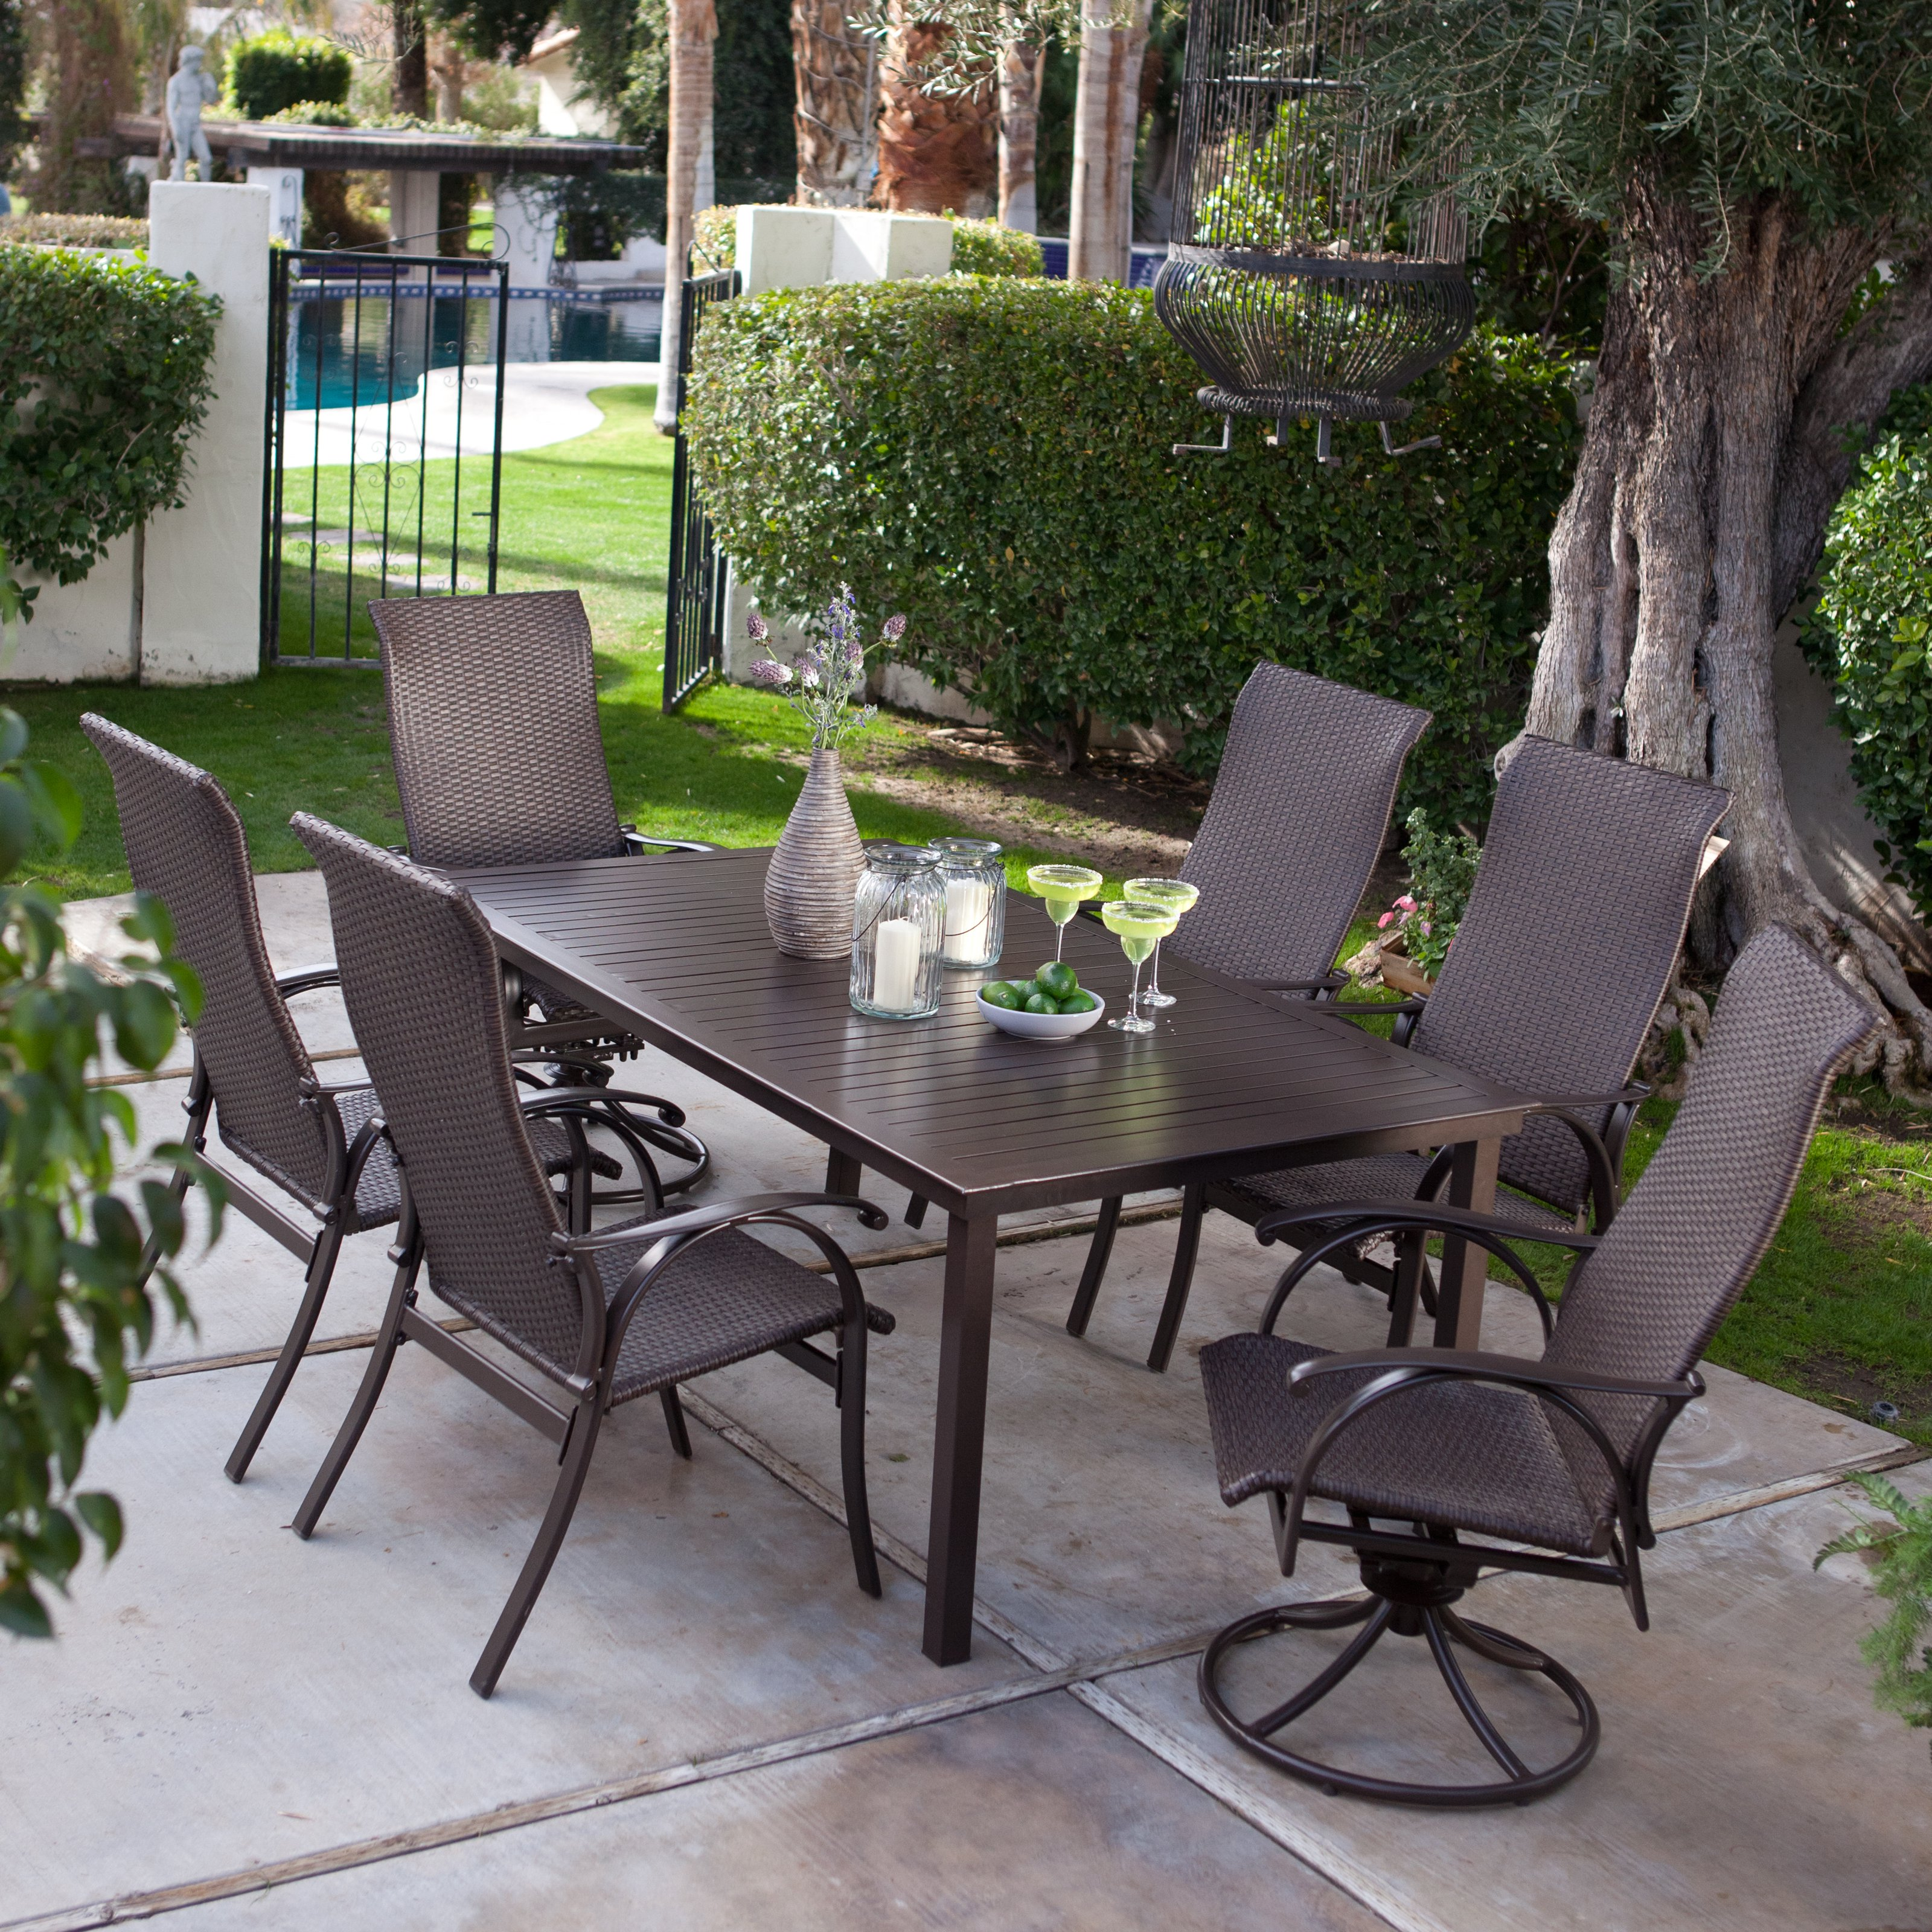 patio dining sets seats 6 photo - 3